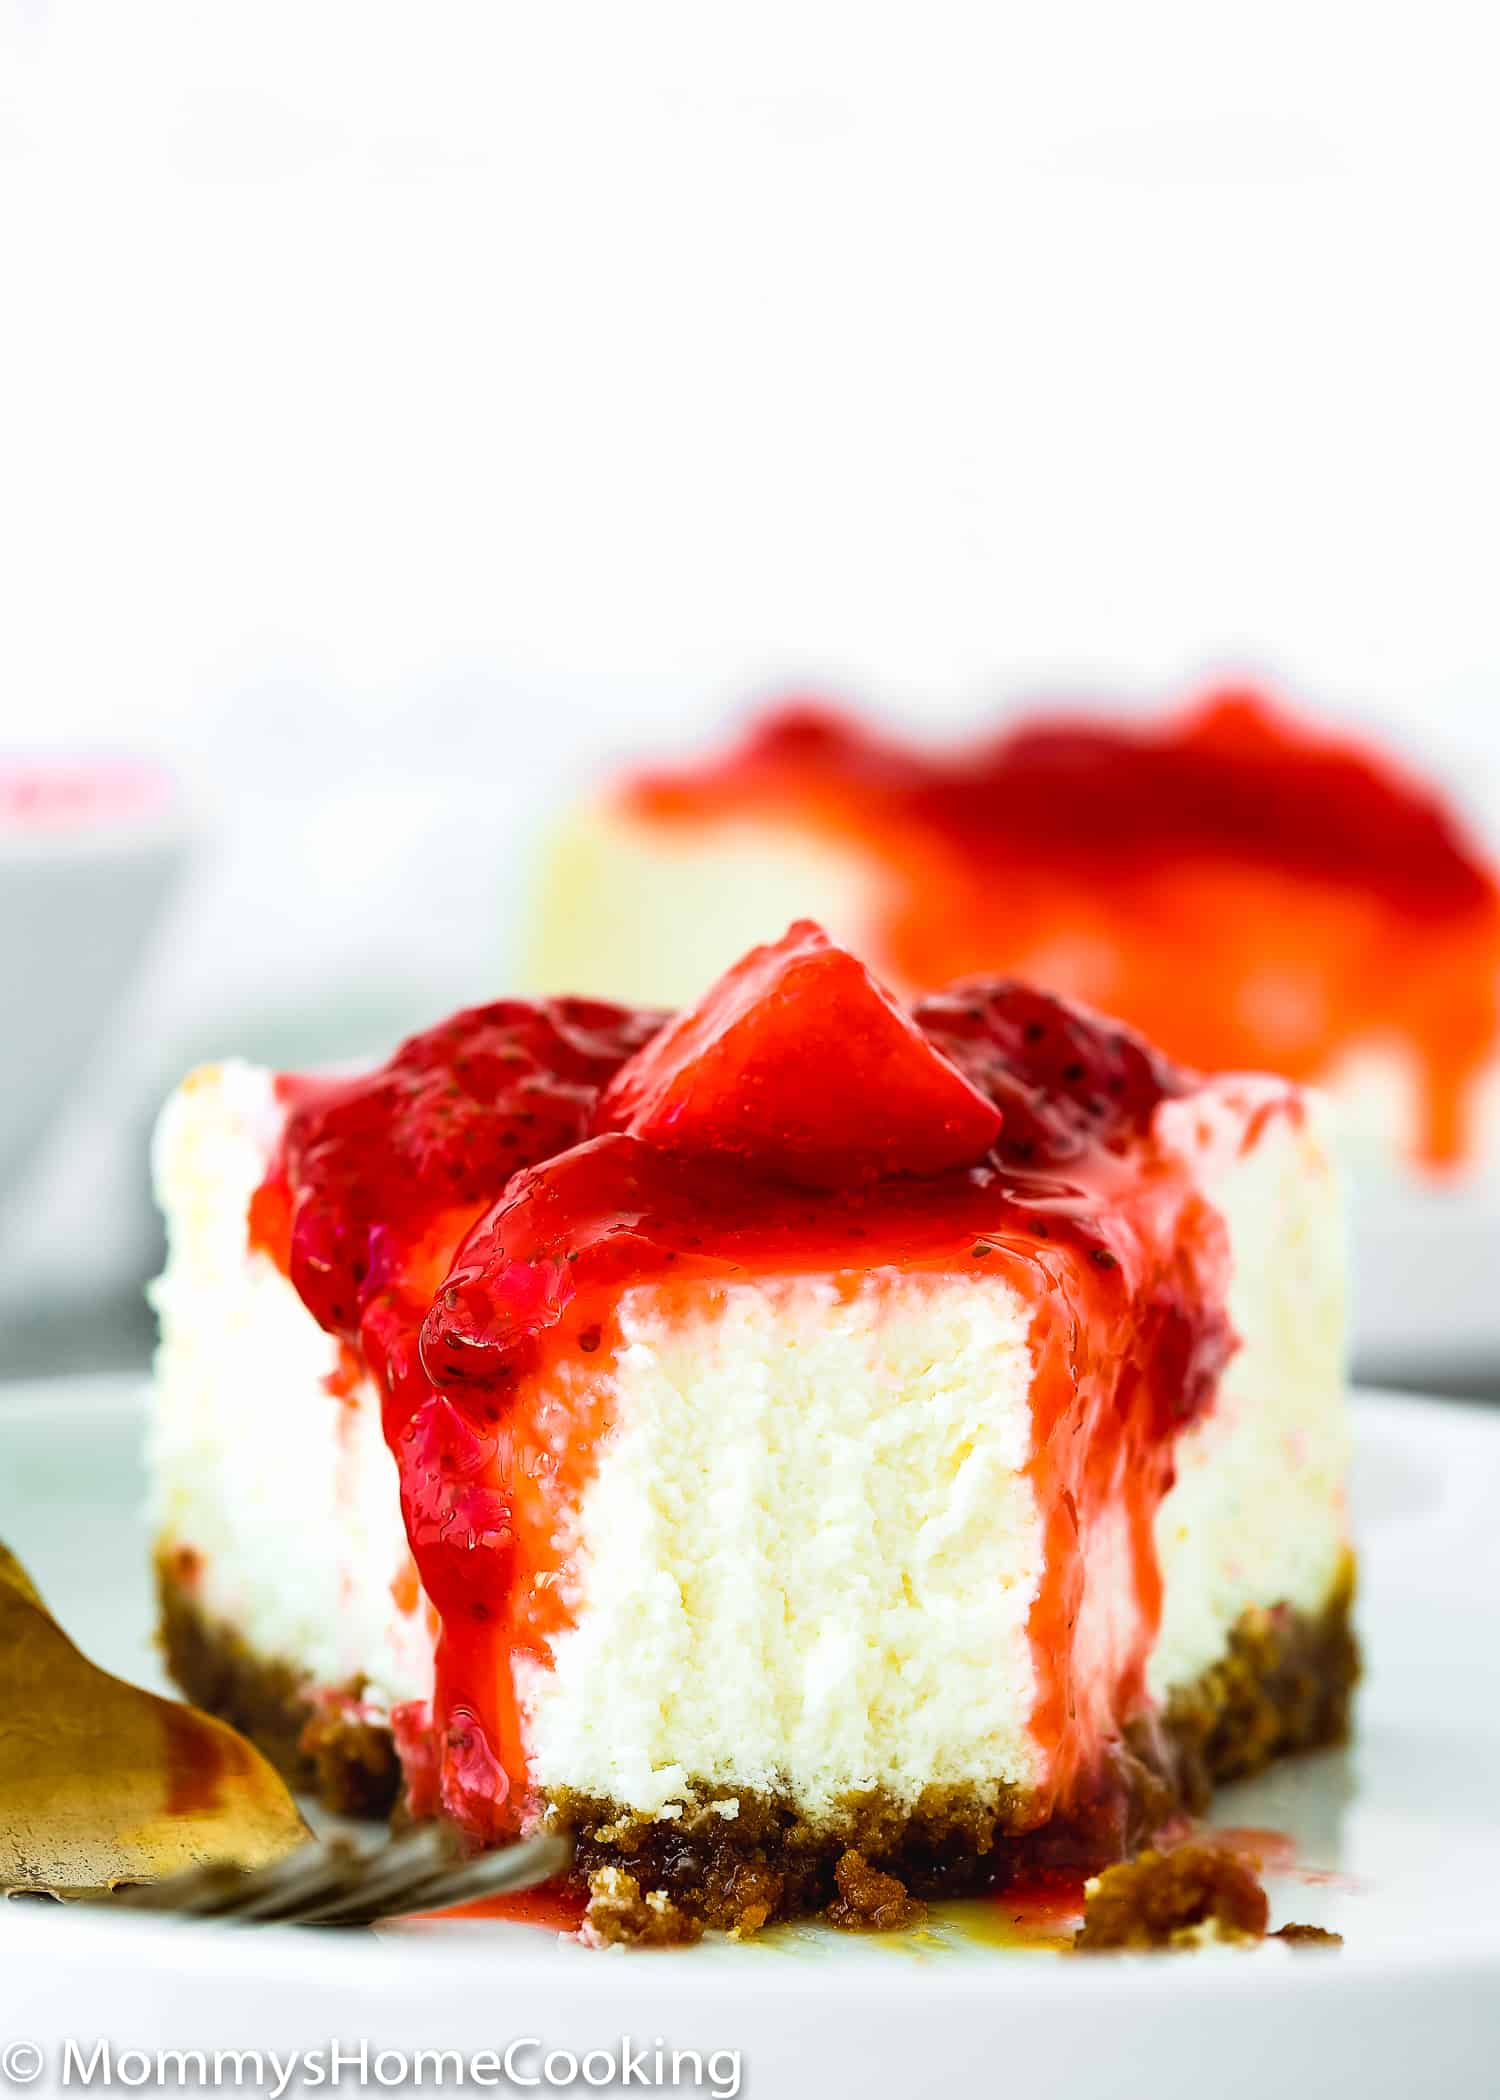 slice of eggless cheesecake cover with strawberry sauce/topping